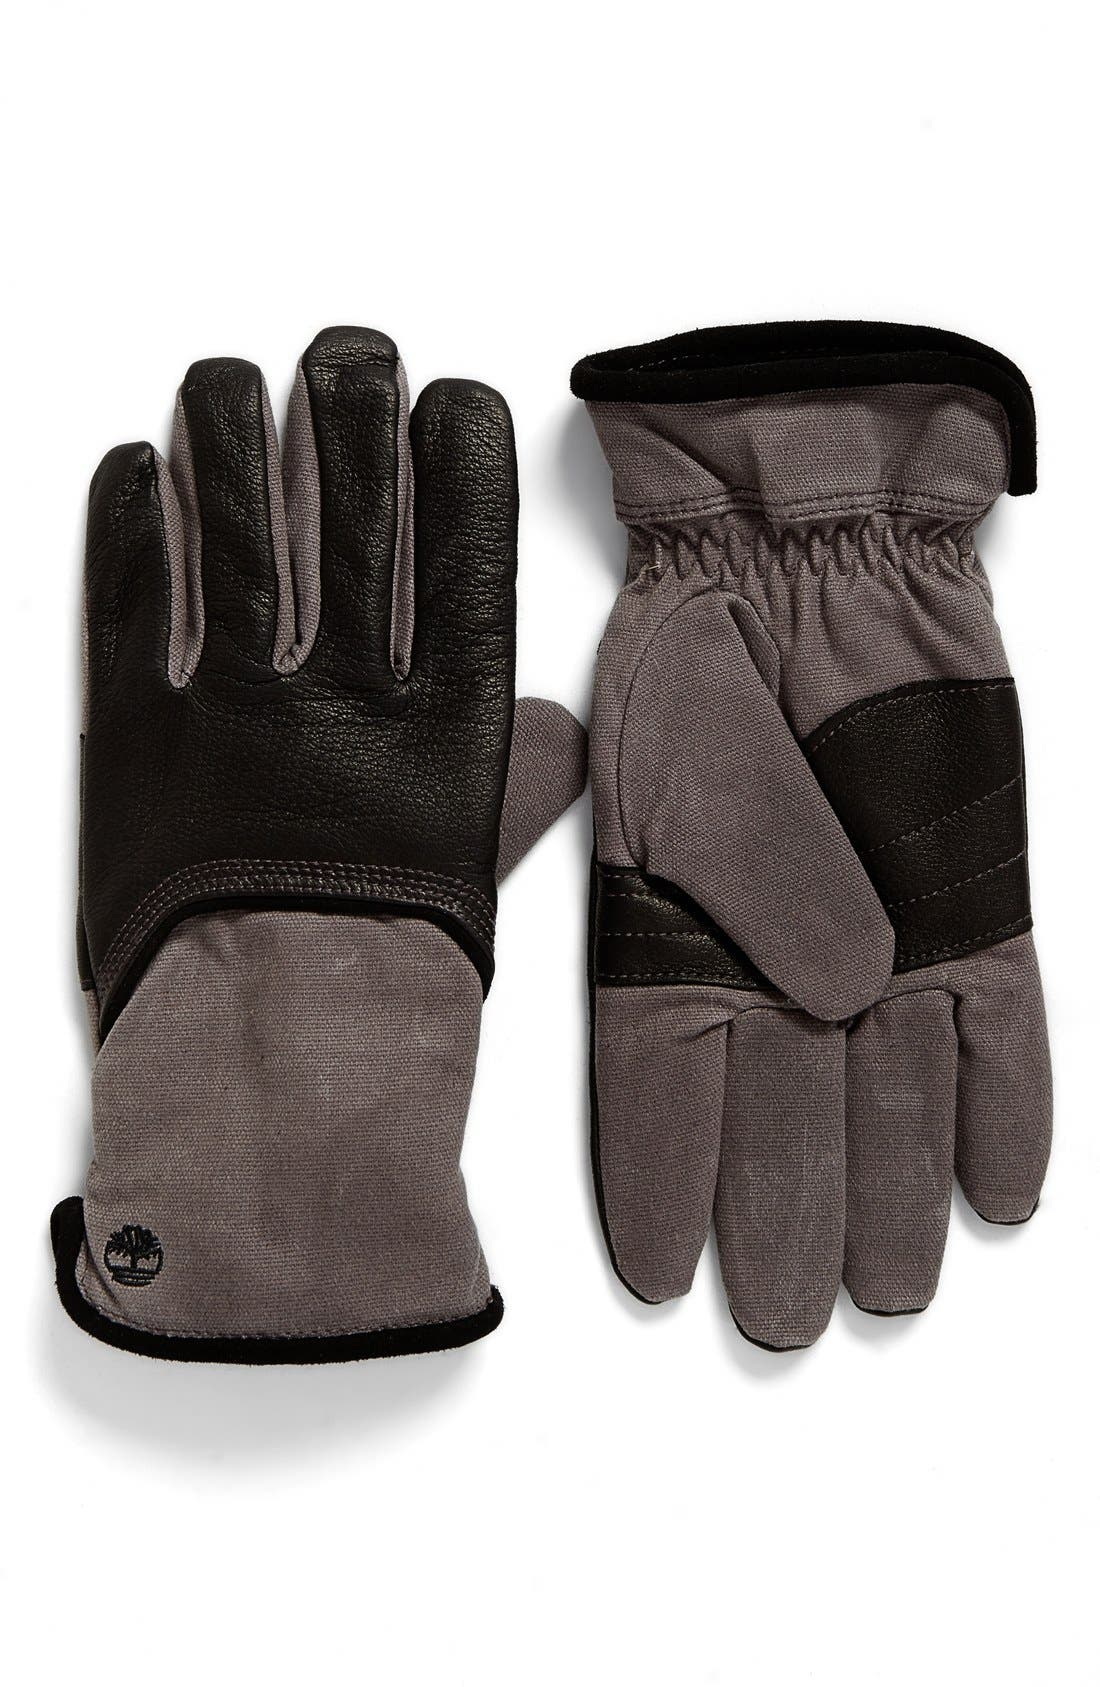 Leather & Canvas Gloves,                             Main thumbnail 1, color,                             Black